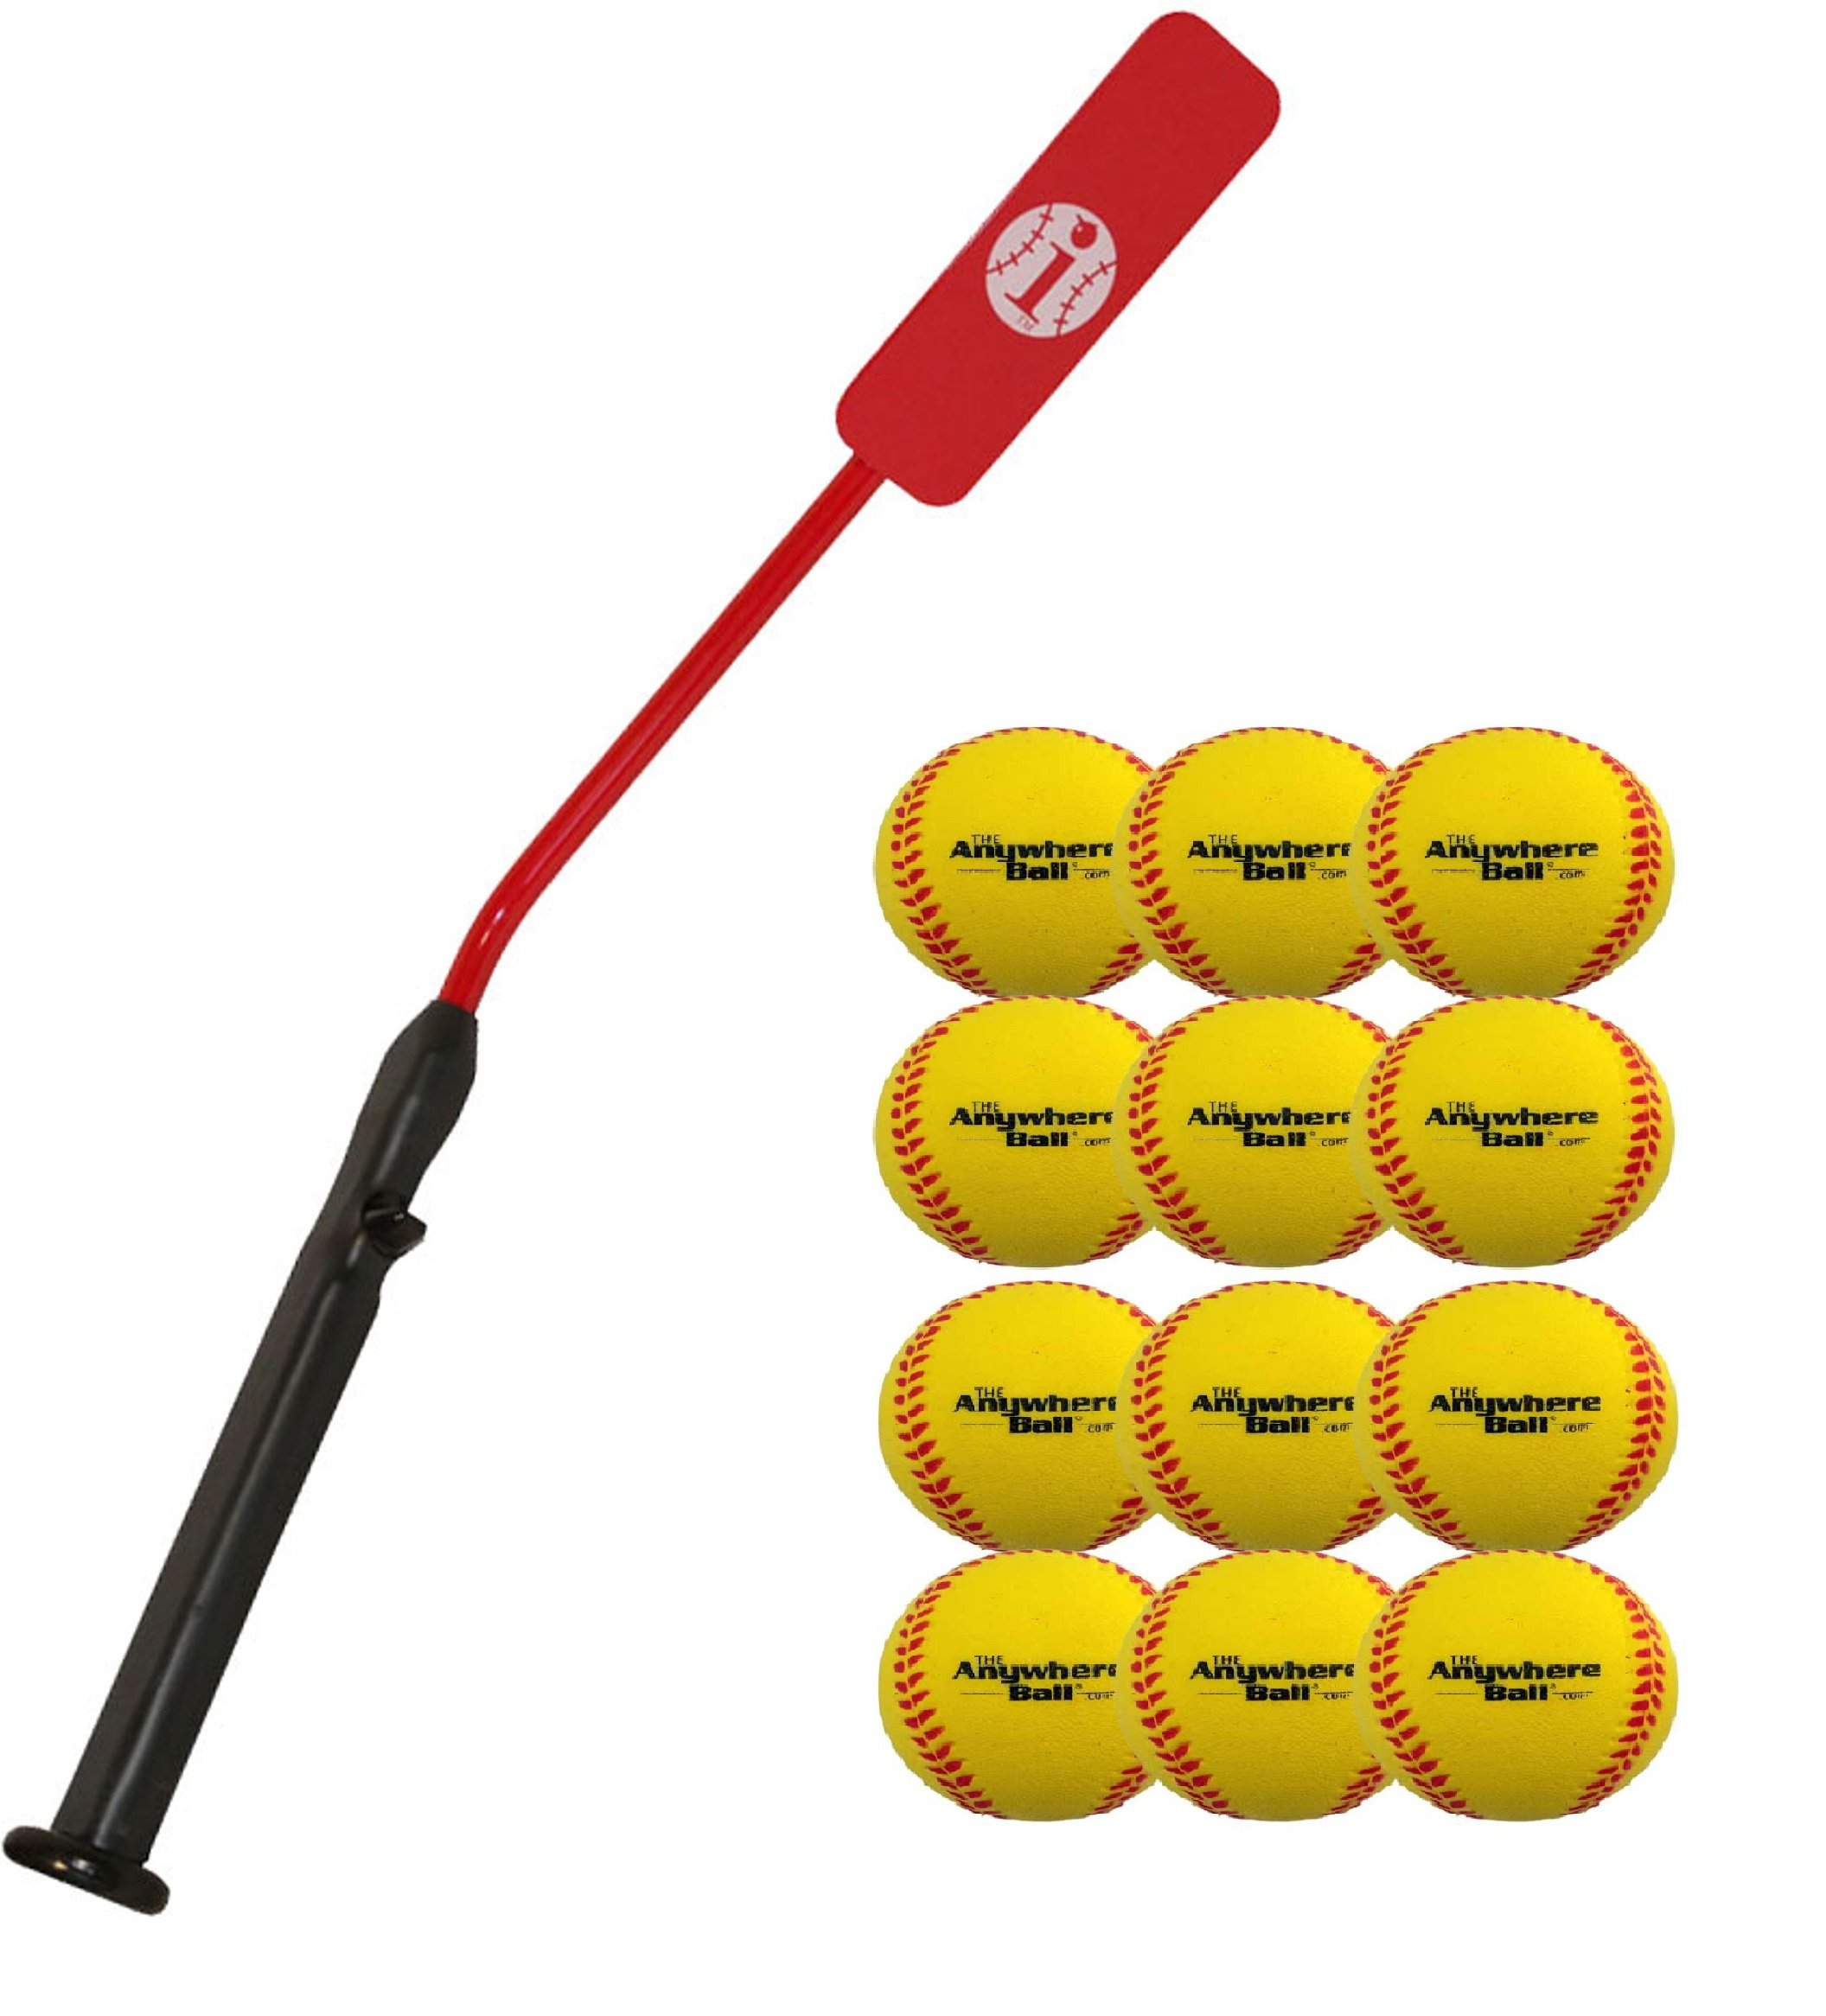 Insider Bat Size 6 and Anywhere Ball Complete Baseball Softball Batting Practice Kit (1 Bat & 12 Balls) by Mpo